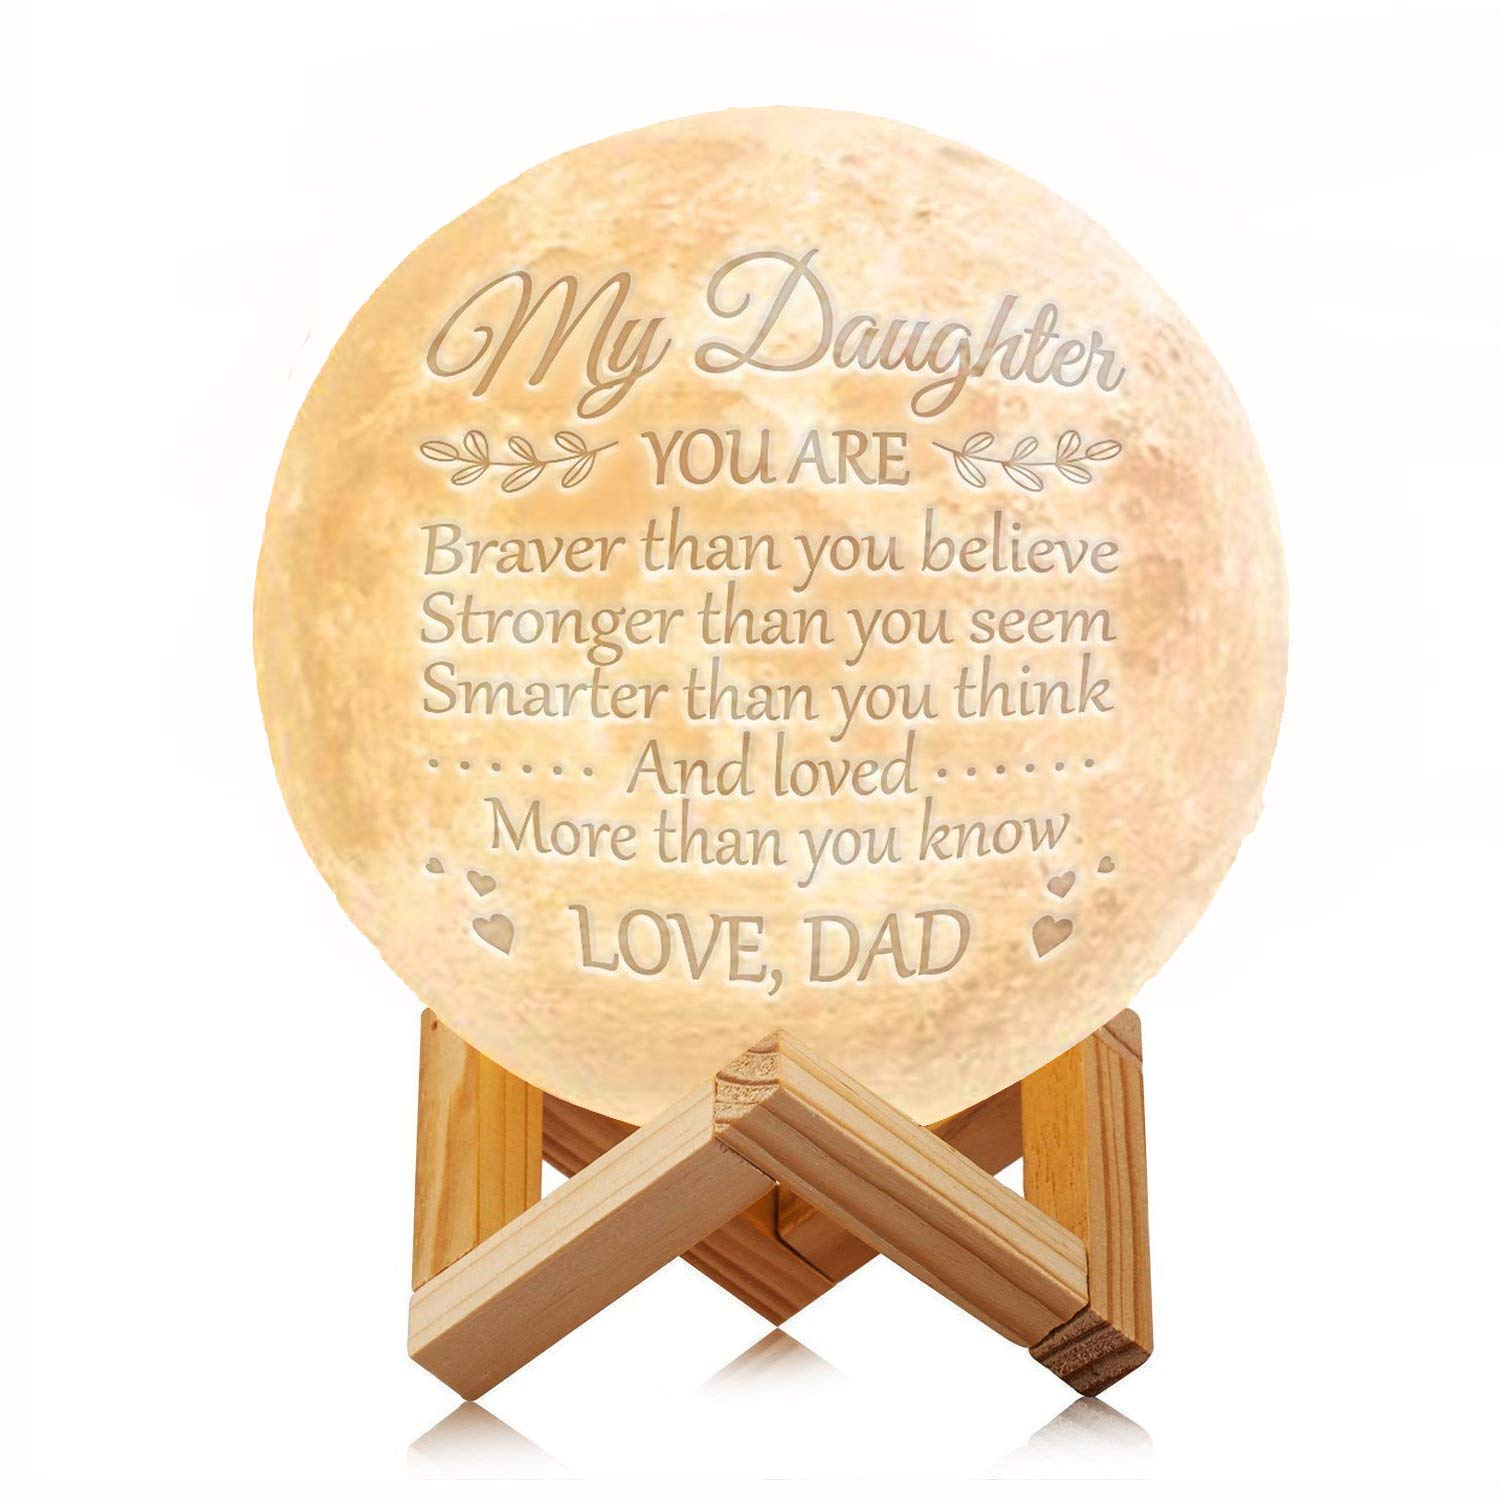 Engraved Moon Lamp Night Light - Brave & Smart Moon Light with Touch Control Brightness - from Mom/Dad to Daughter (B - from Dad)